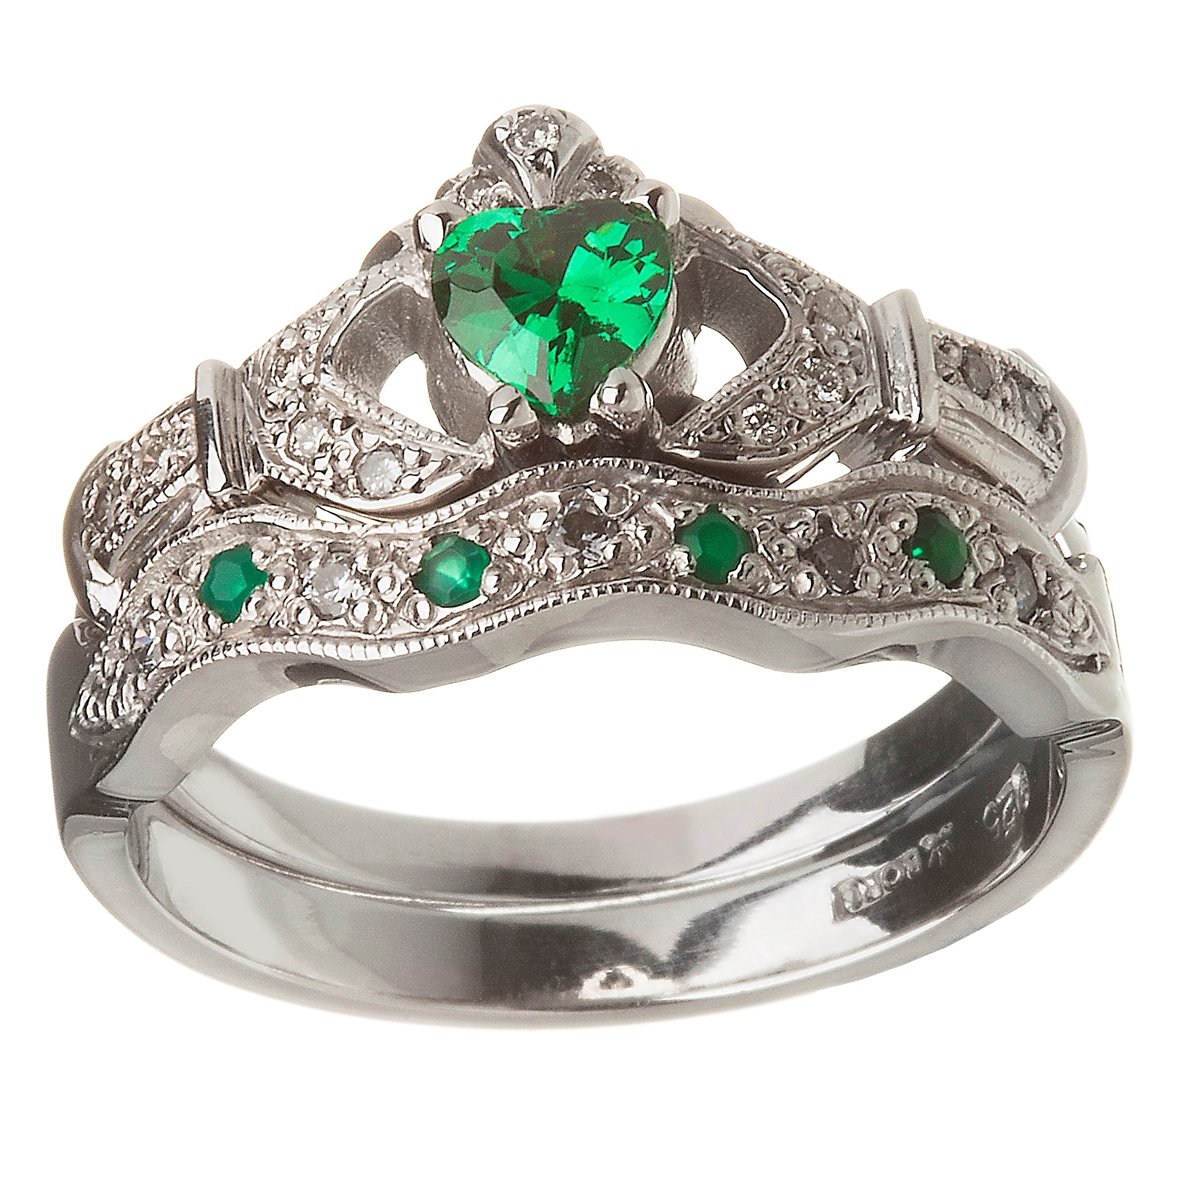 boho diamond gemstone of kind band emerald engagement a engagment jewellery jewelry cut rings one twig ring and wedding